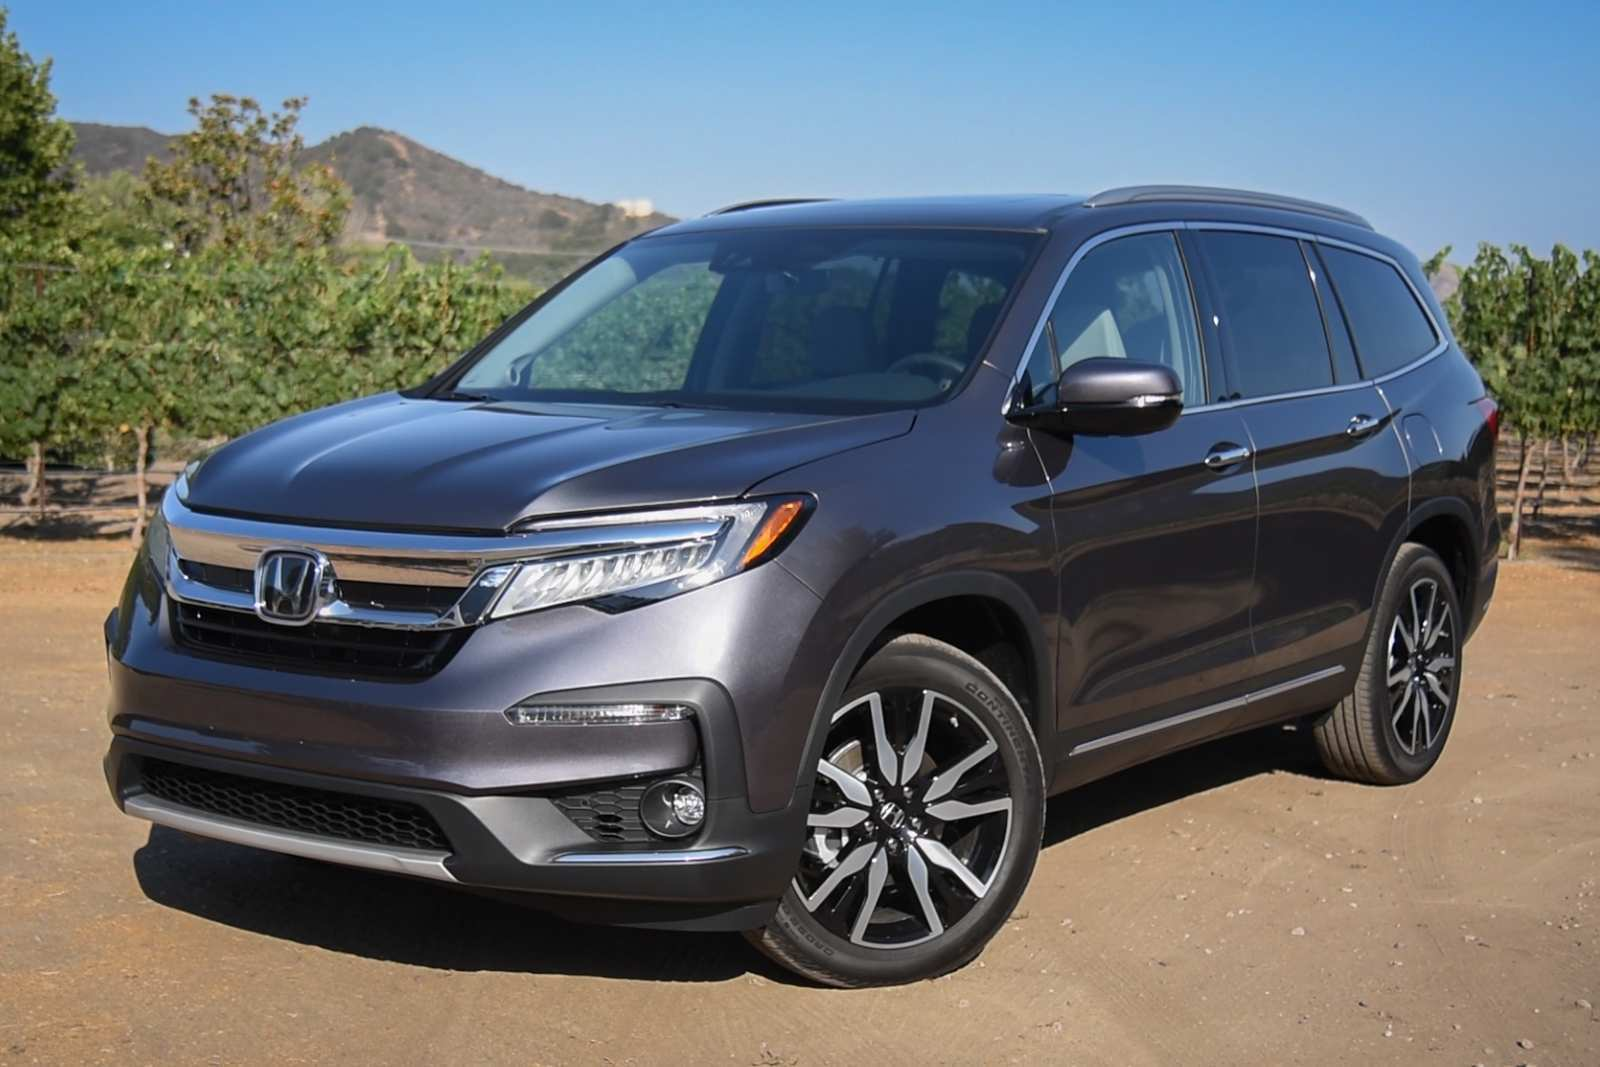 58 The 2019 Honda Pilot Review First Drive for 2019 Honda Pilot Review